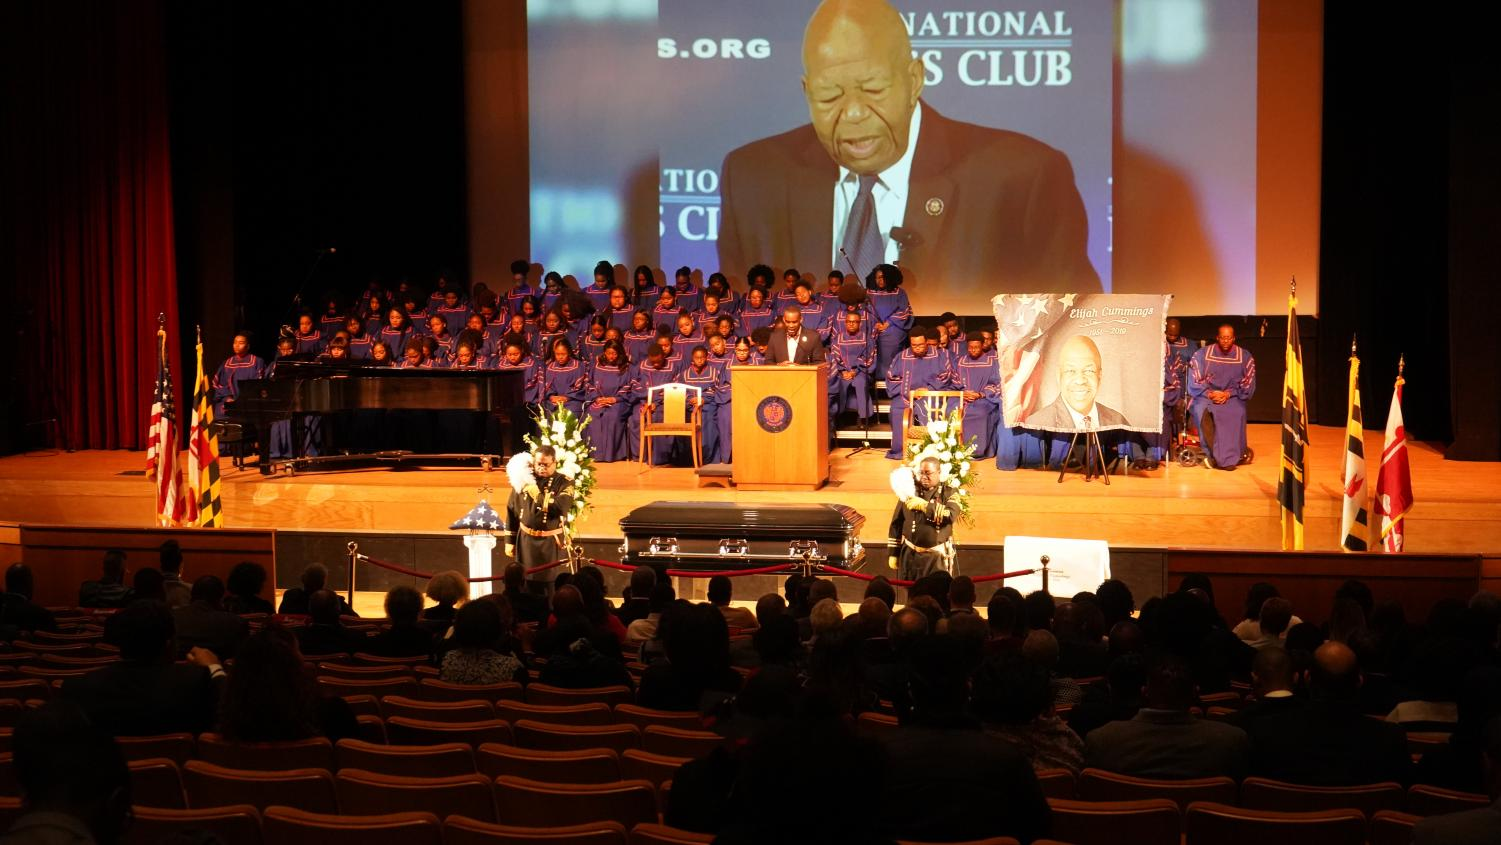 Rep. Elijah Cummings' casket was flanked with flowers and guards as the university choir sat on stage and a slideshow in Cummings' honor played.